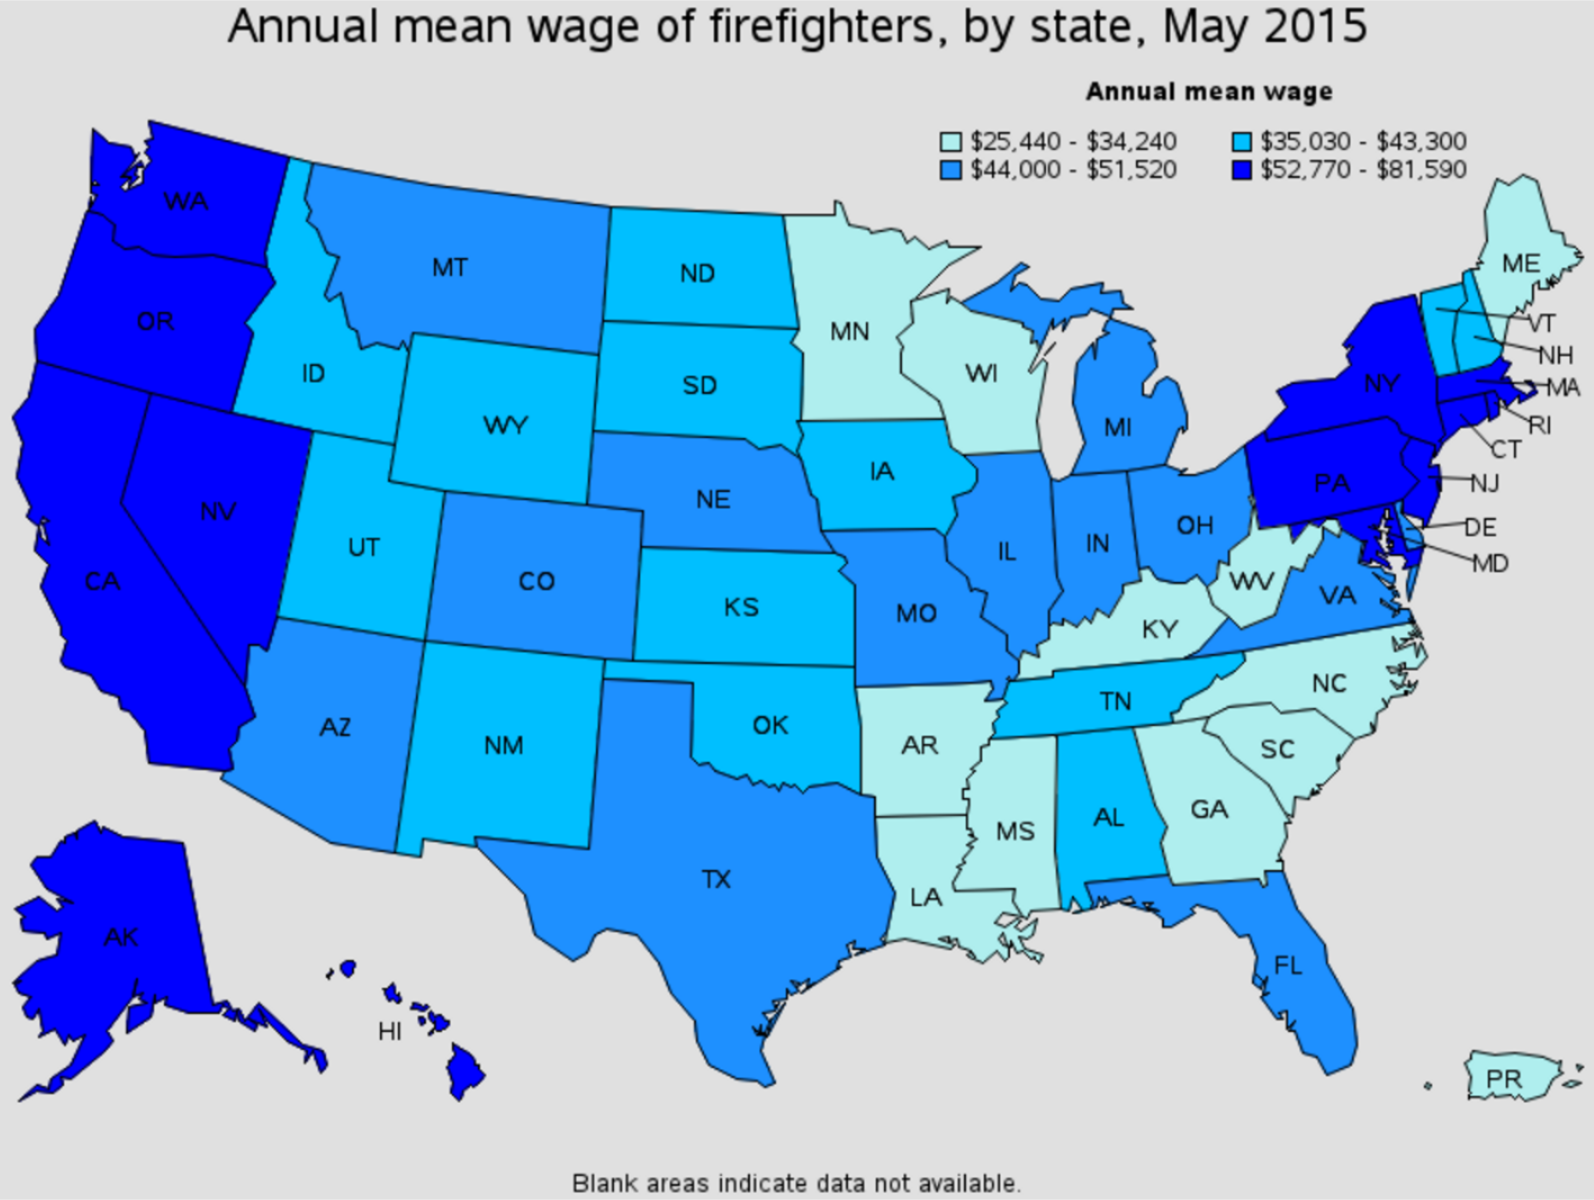 firefighter average salary by state Savannah Georgia